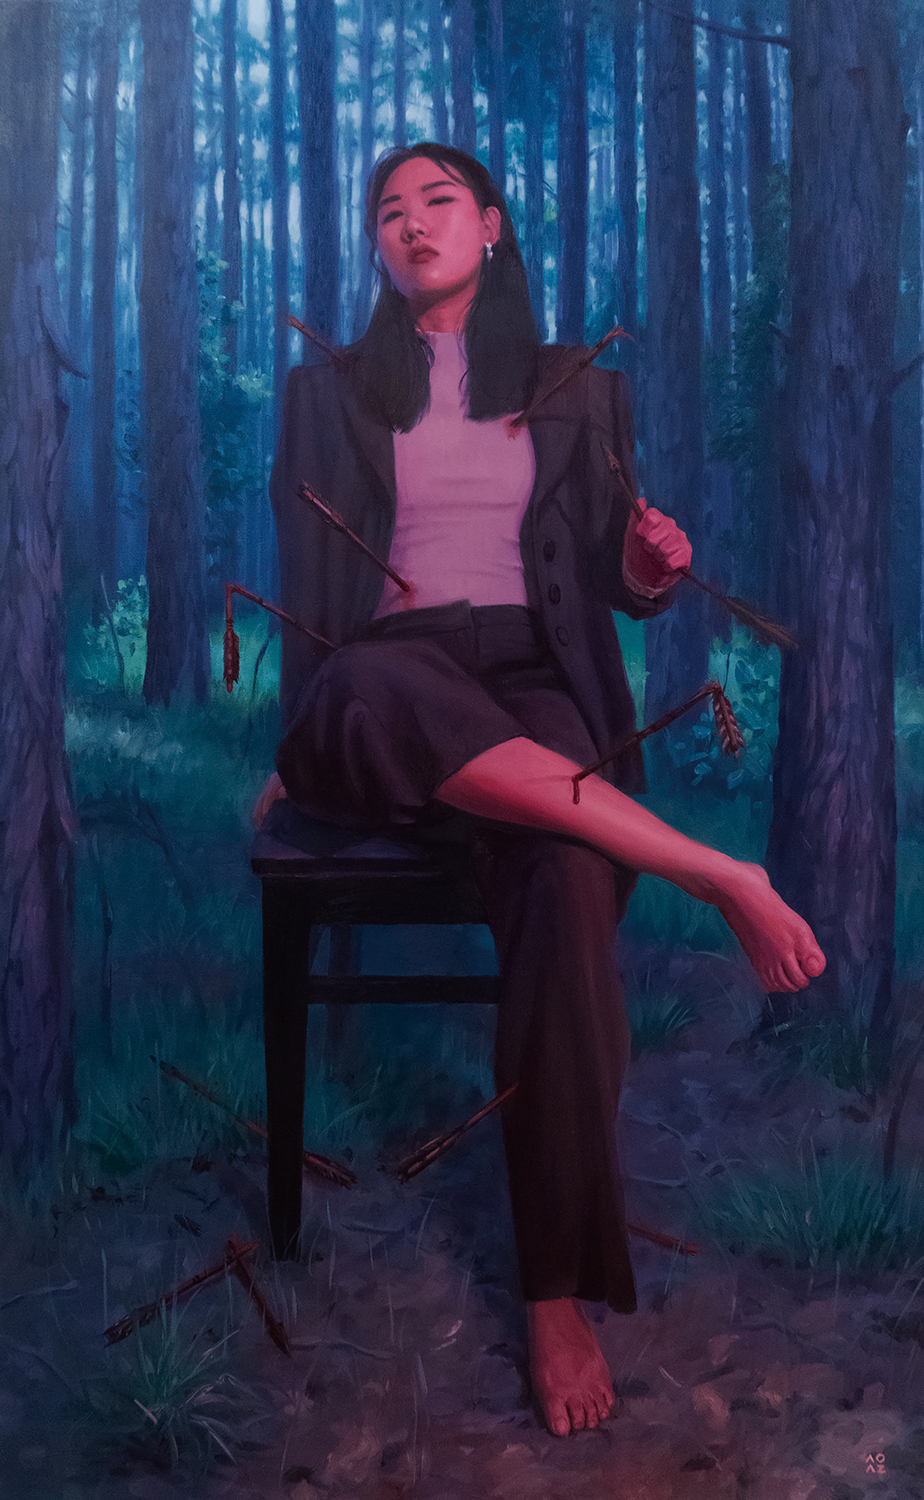 a girl in a suit sitting in forest with arrow shots on her body